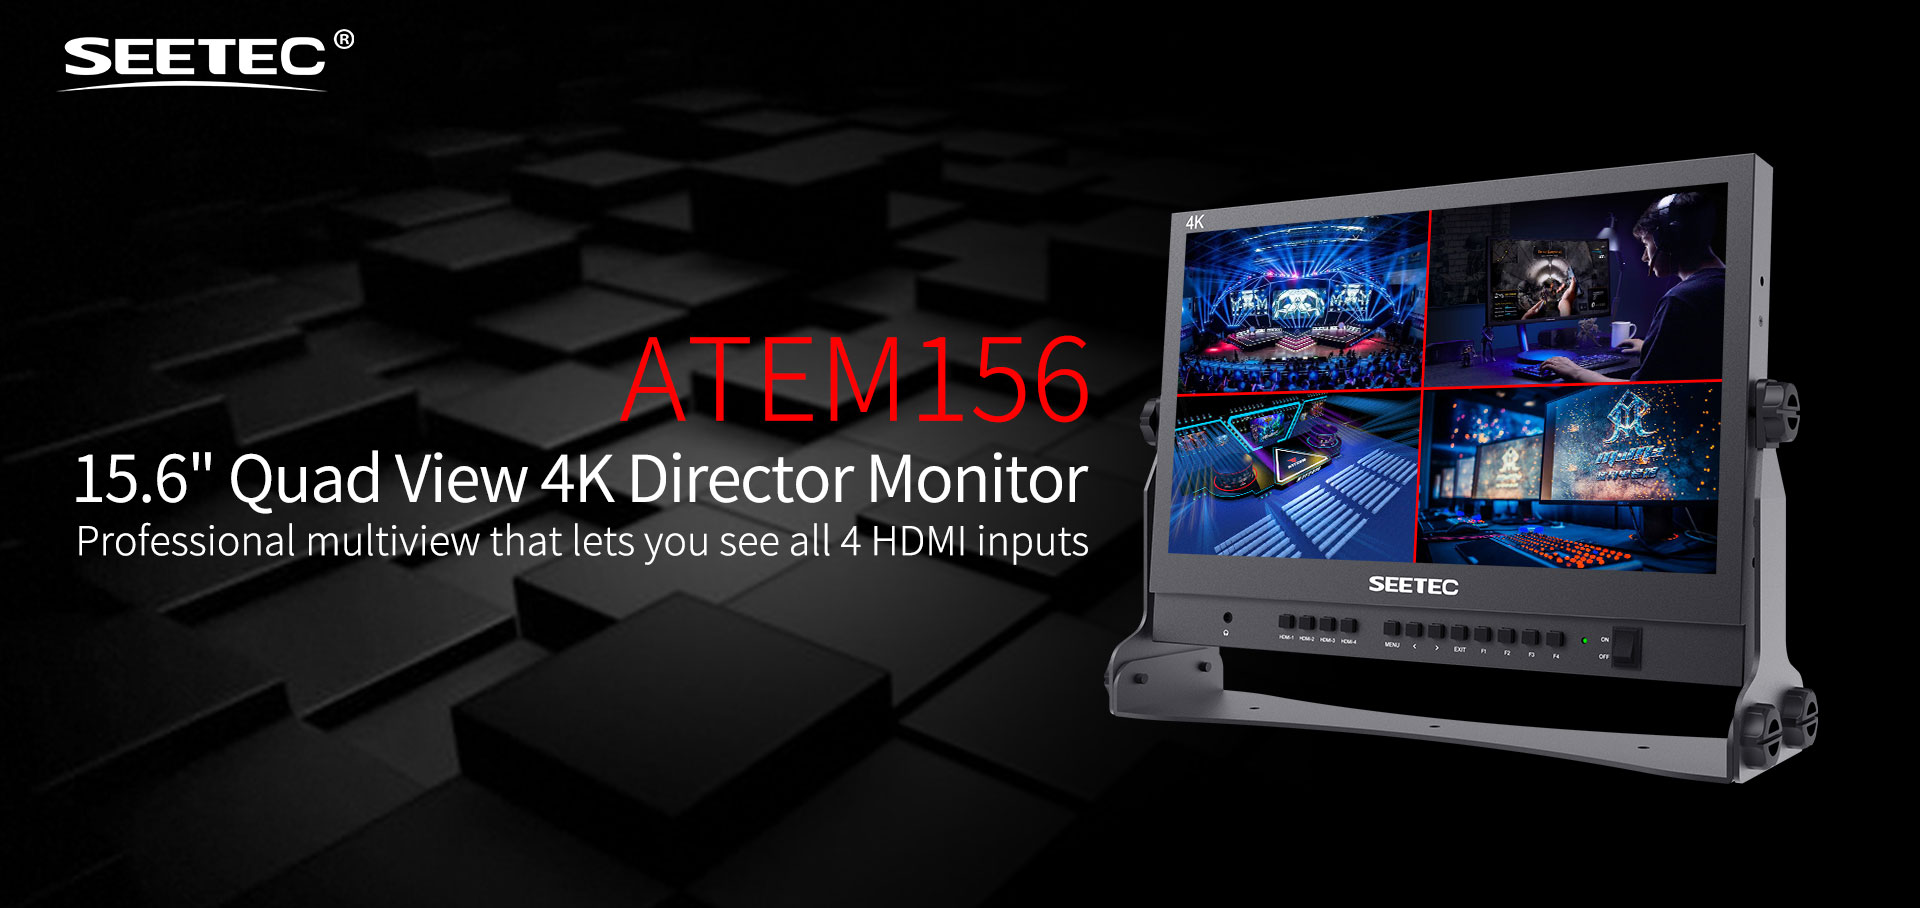 quad view 4K director monitor